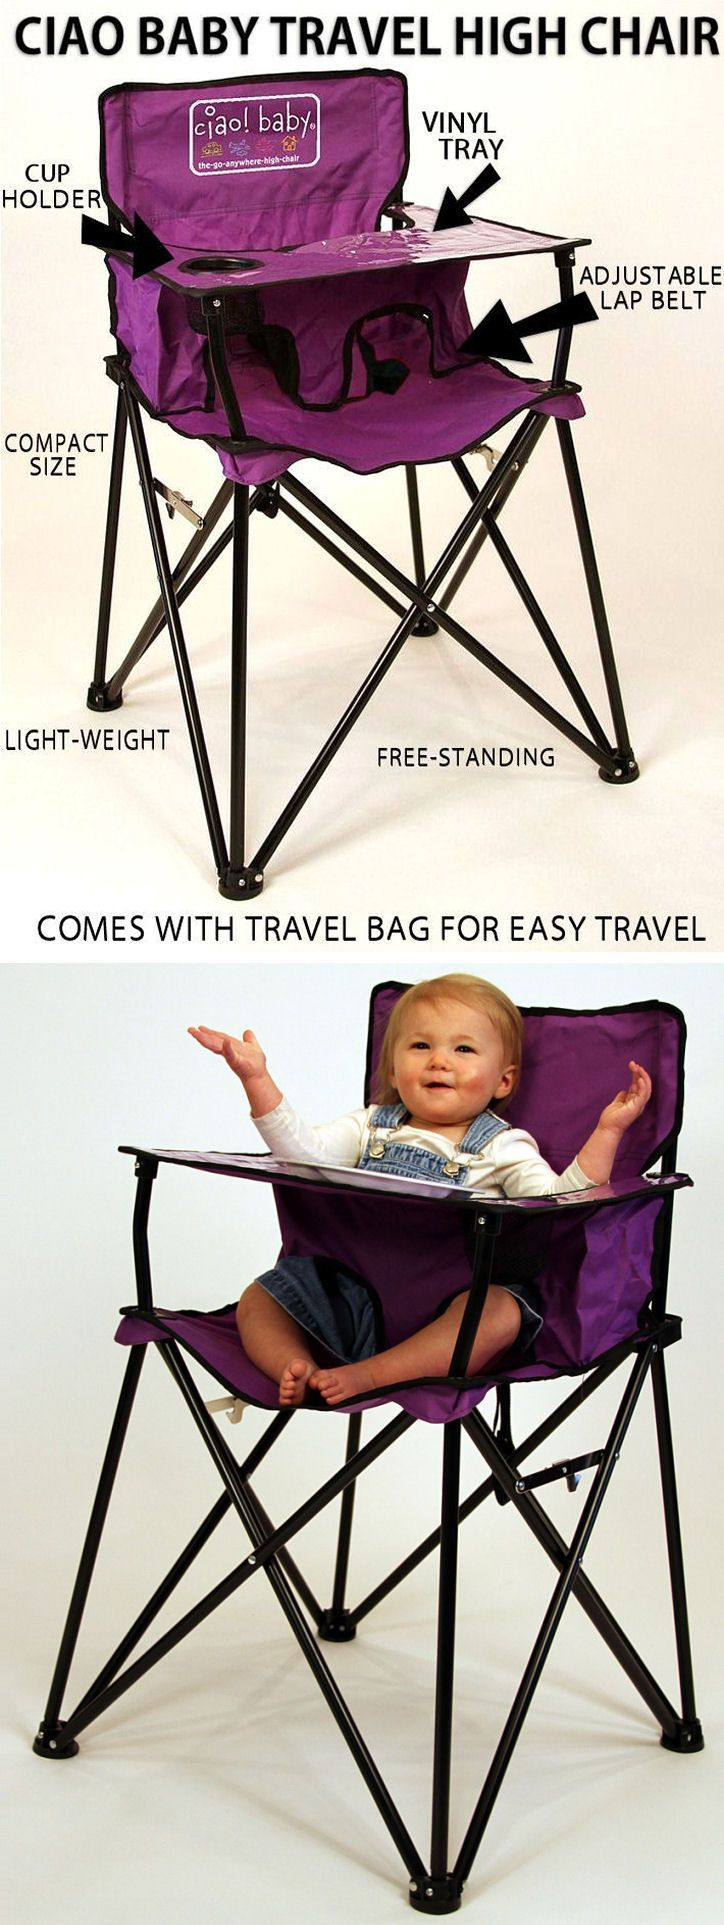 Superior Portable Baby High Chair | Folds Up For Easy Travel. Great For Park, Camping